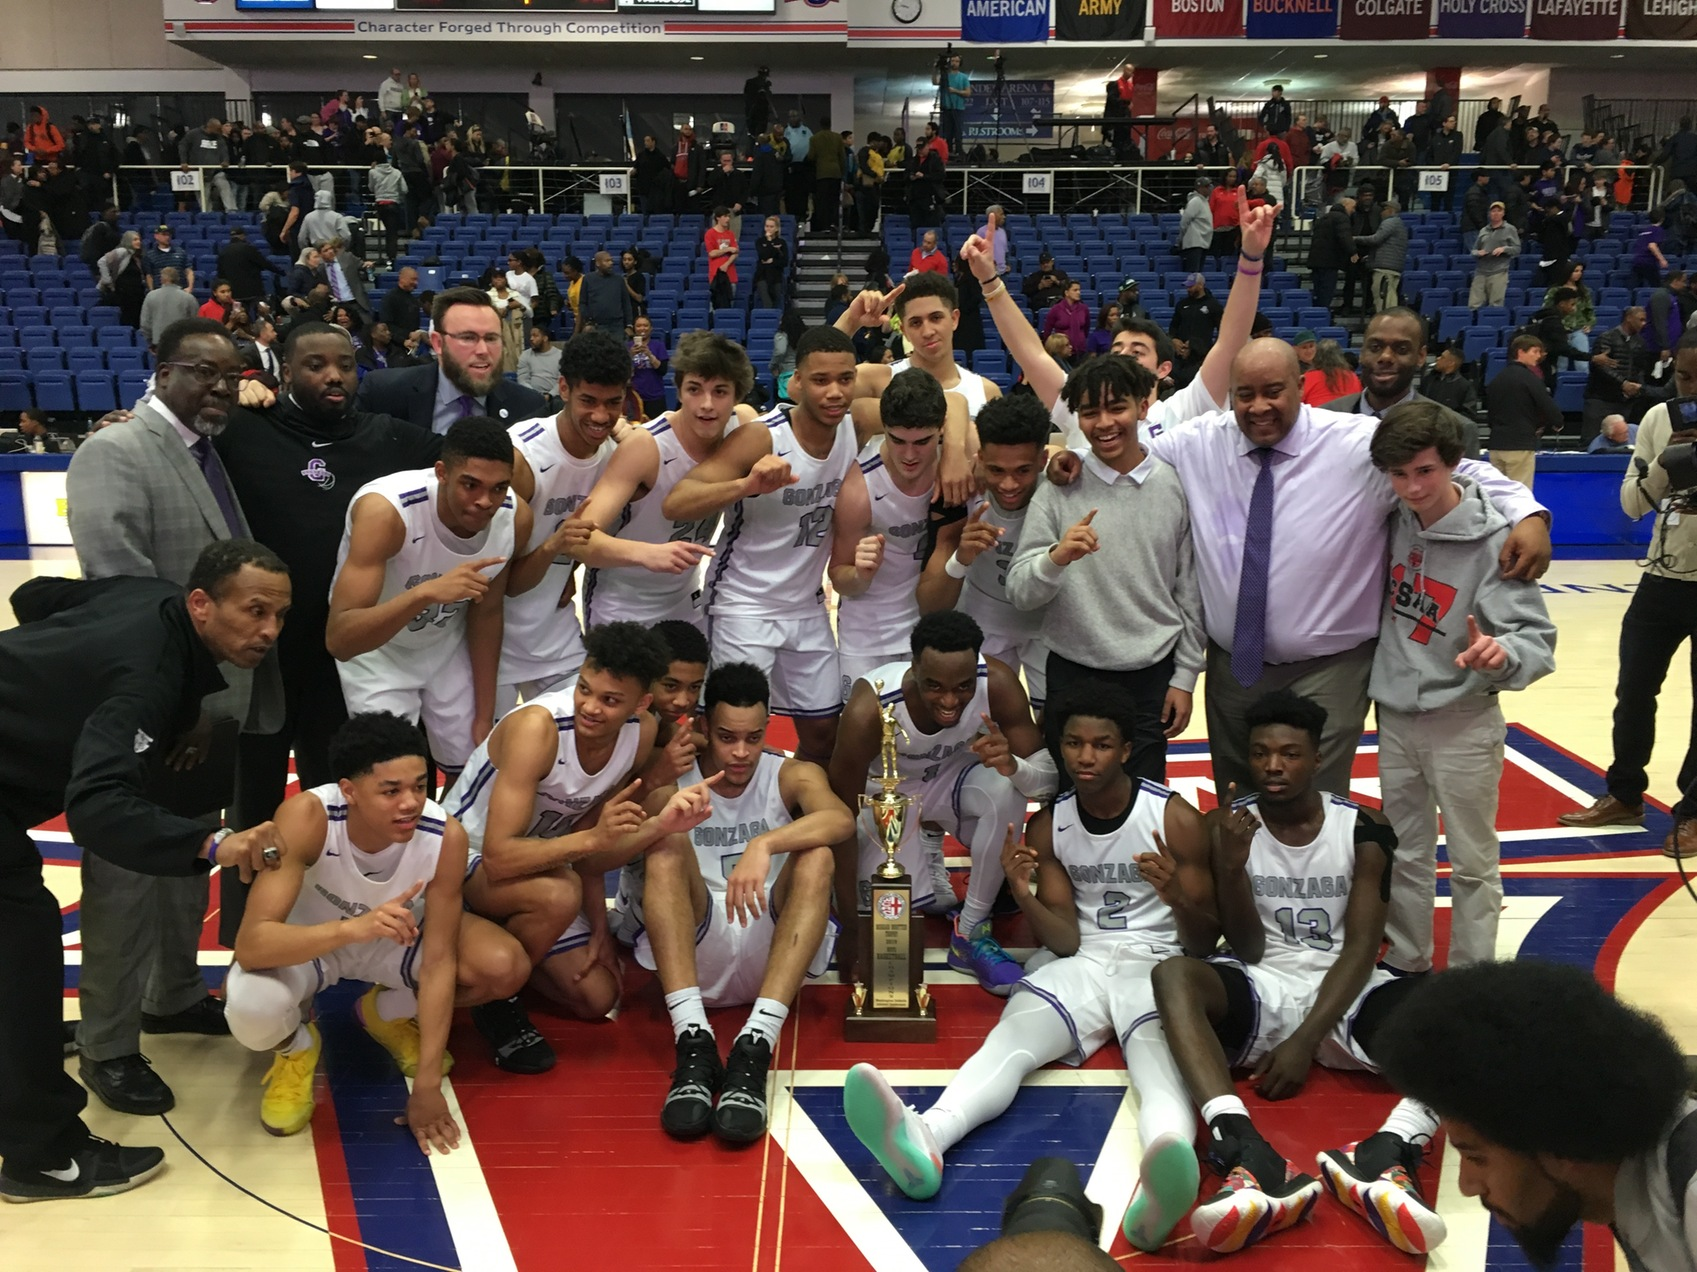 Gonzaga finishes off St. John's to win its third WCAC boys' basketball title in five seasons